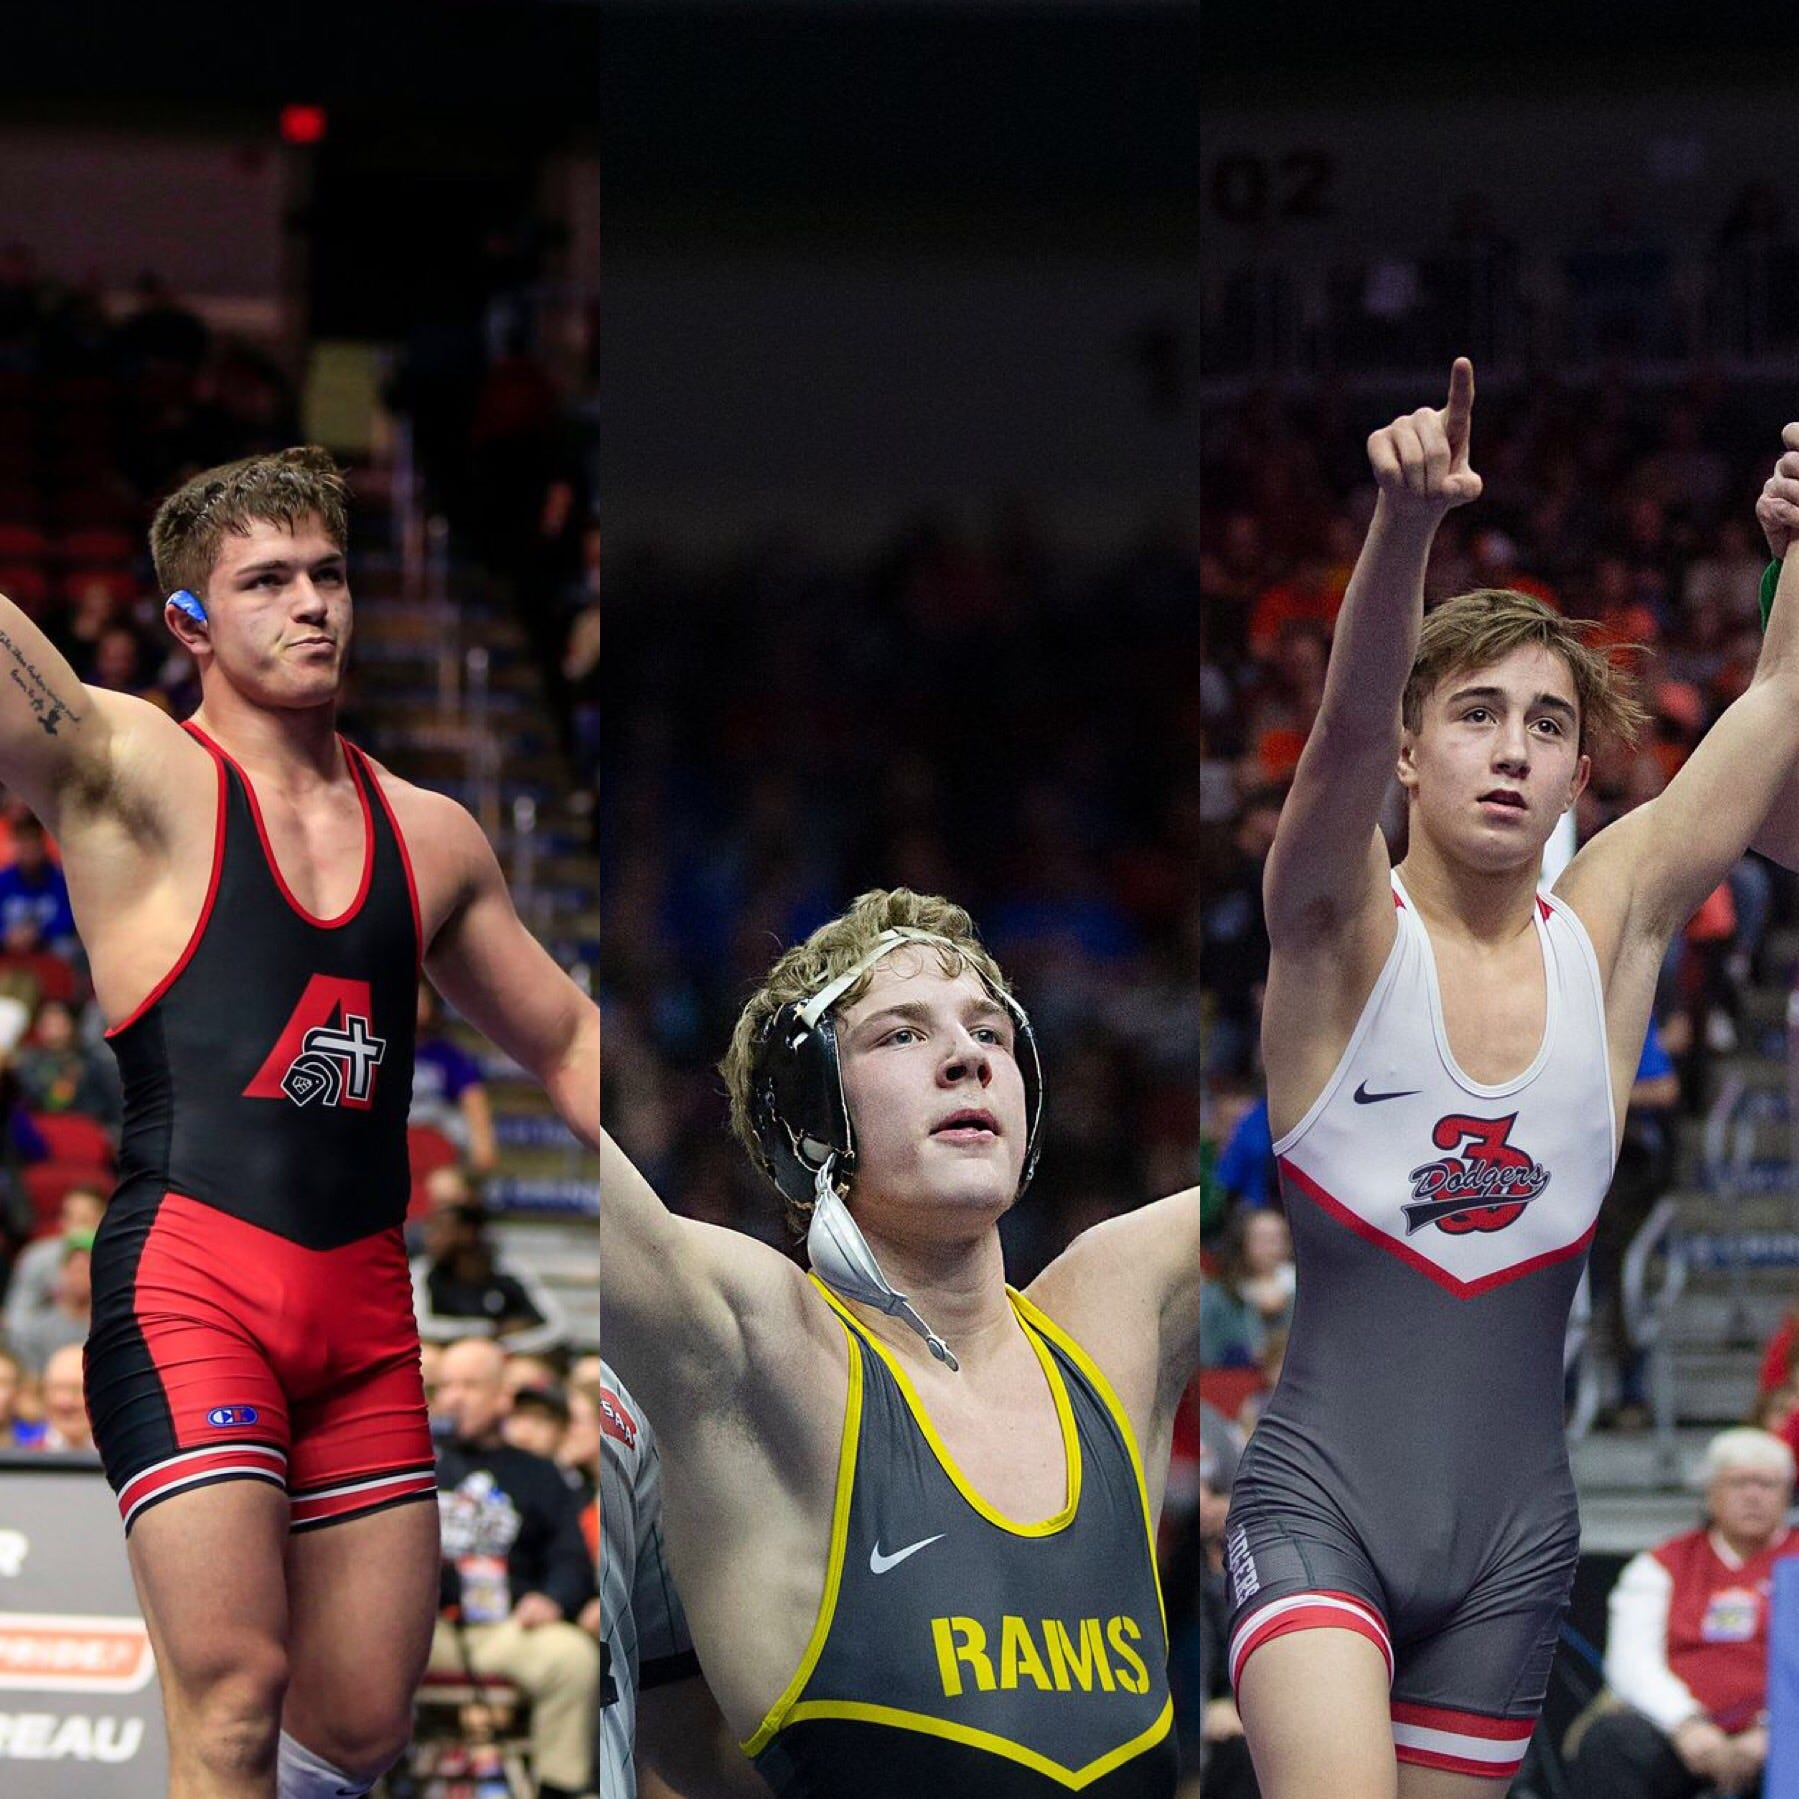 Meet the 2019 All-Iowa Wrestler of the Year Finalists